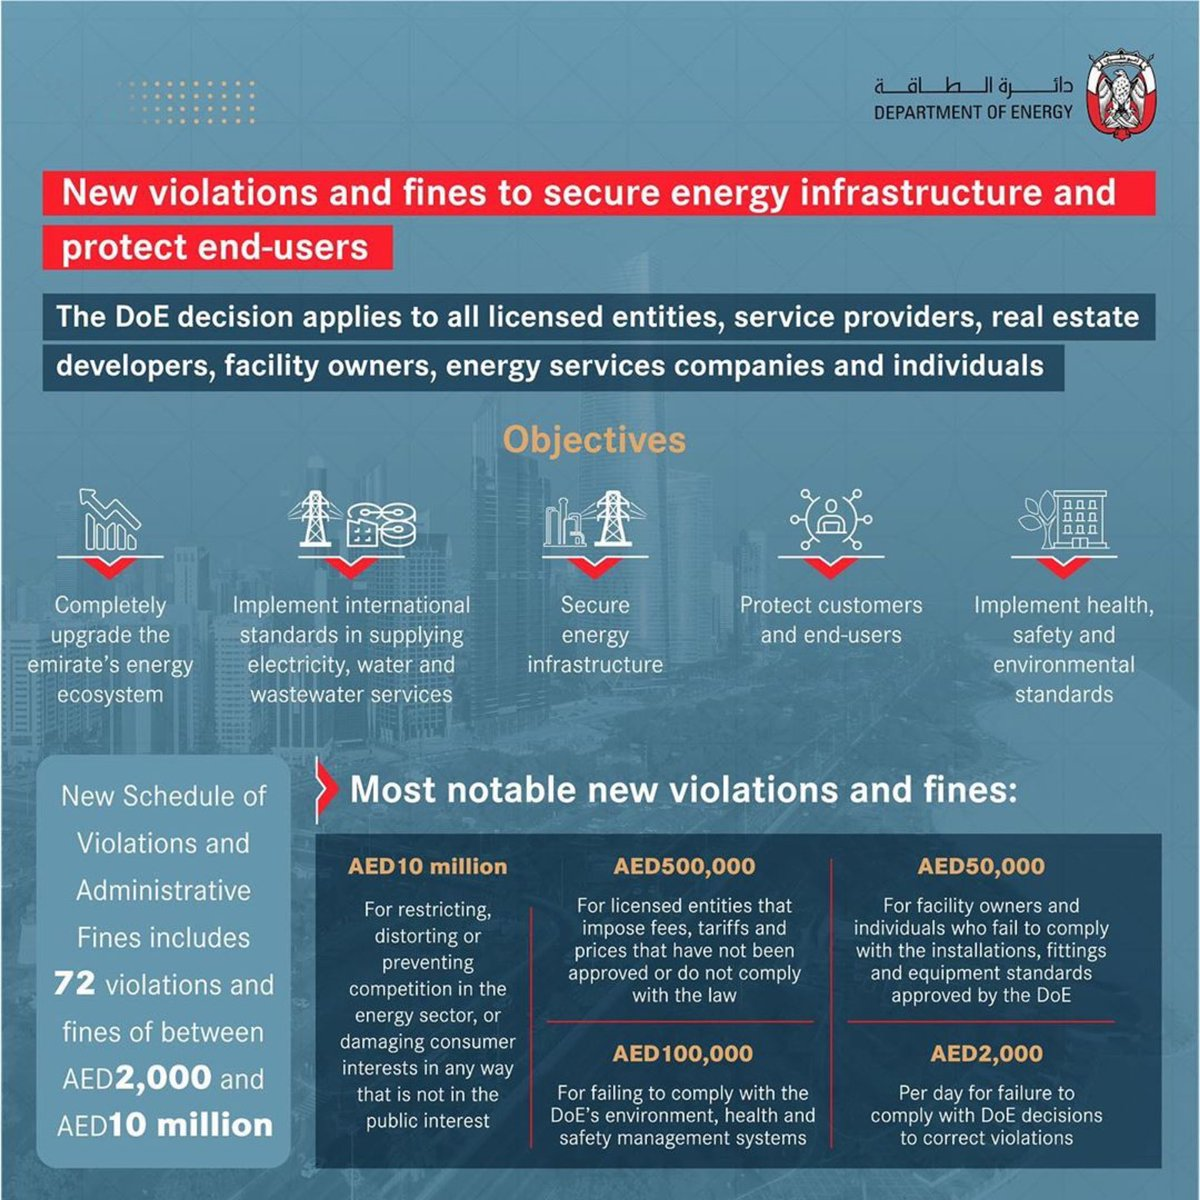 We have updated the list of violations and fines to secure energy infrastructure and protect end-users, in an effort to upgrade the #energy ecosystem and implement international standards in supplying electricity, water and wastewater services #DoE #AbuDhabi #UAE https://t.co/Tf6S2zAiw3